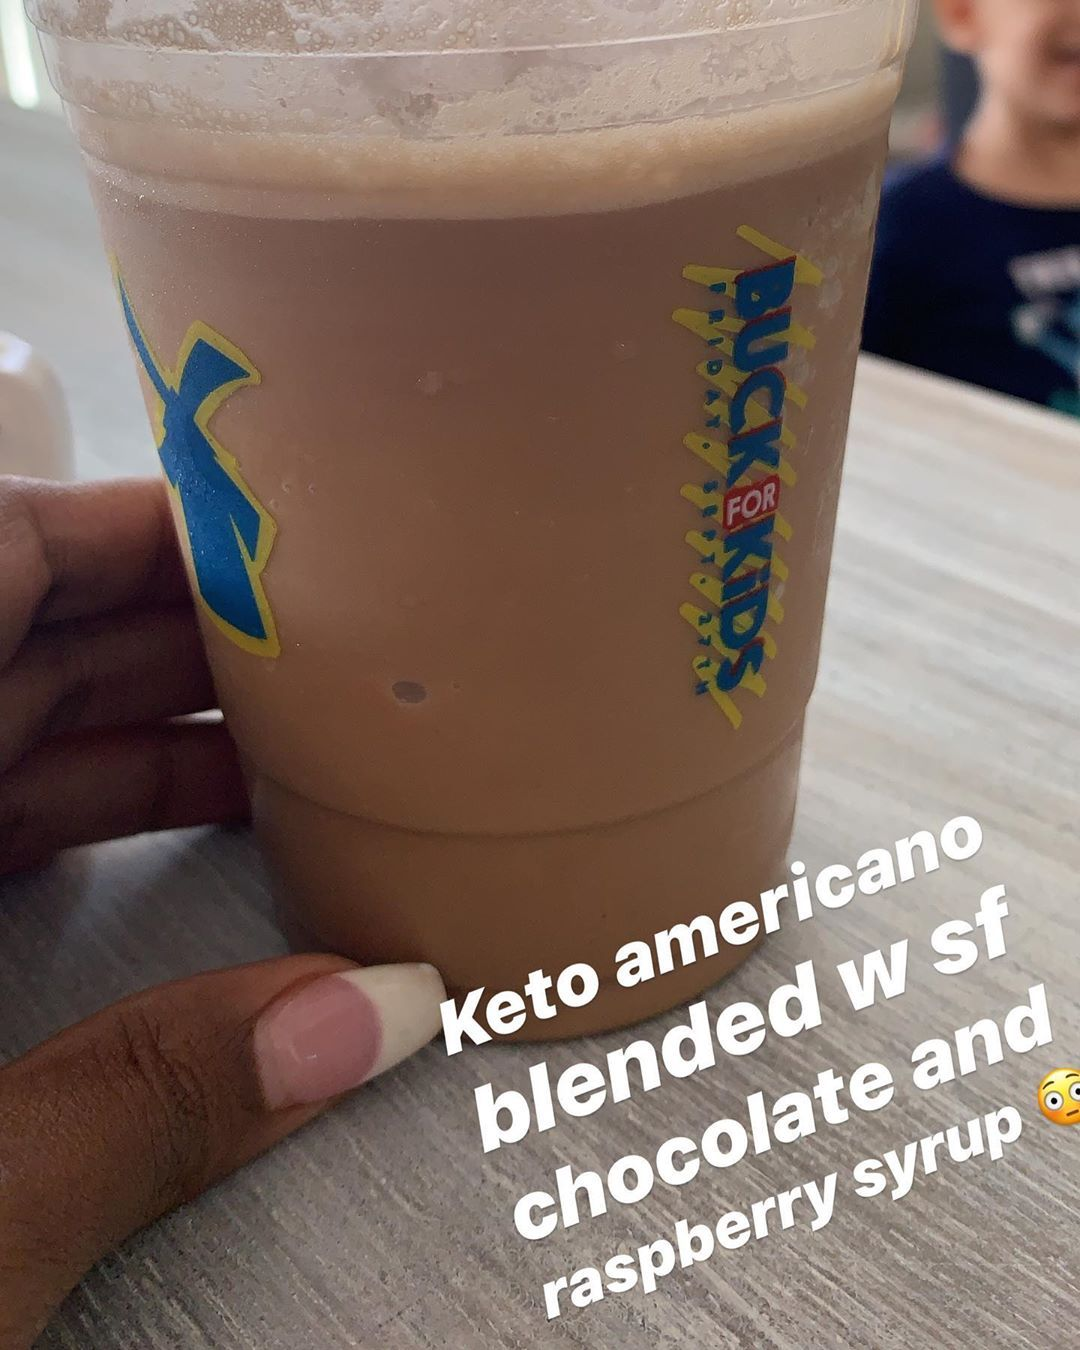 Keto @ dutchbros!! Sugar free chocolate and raspberry syrup in a blended iced americano with heavy w...